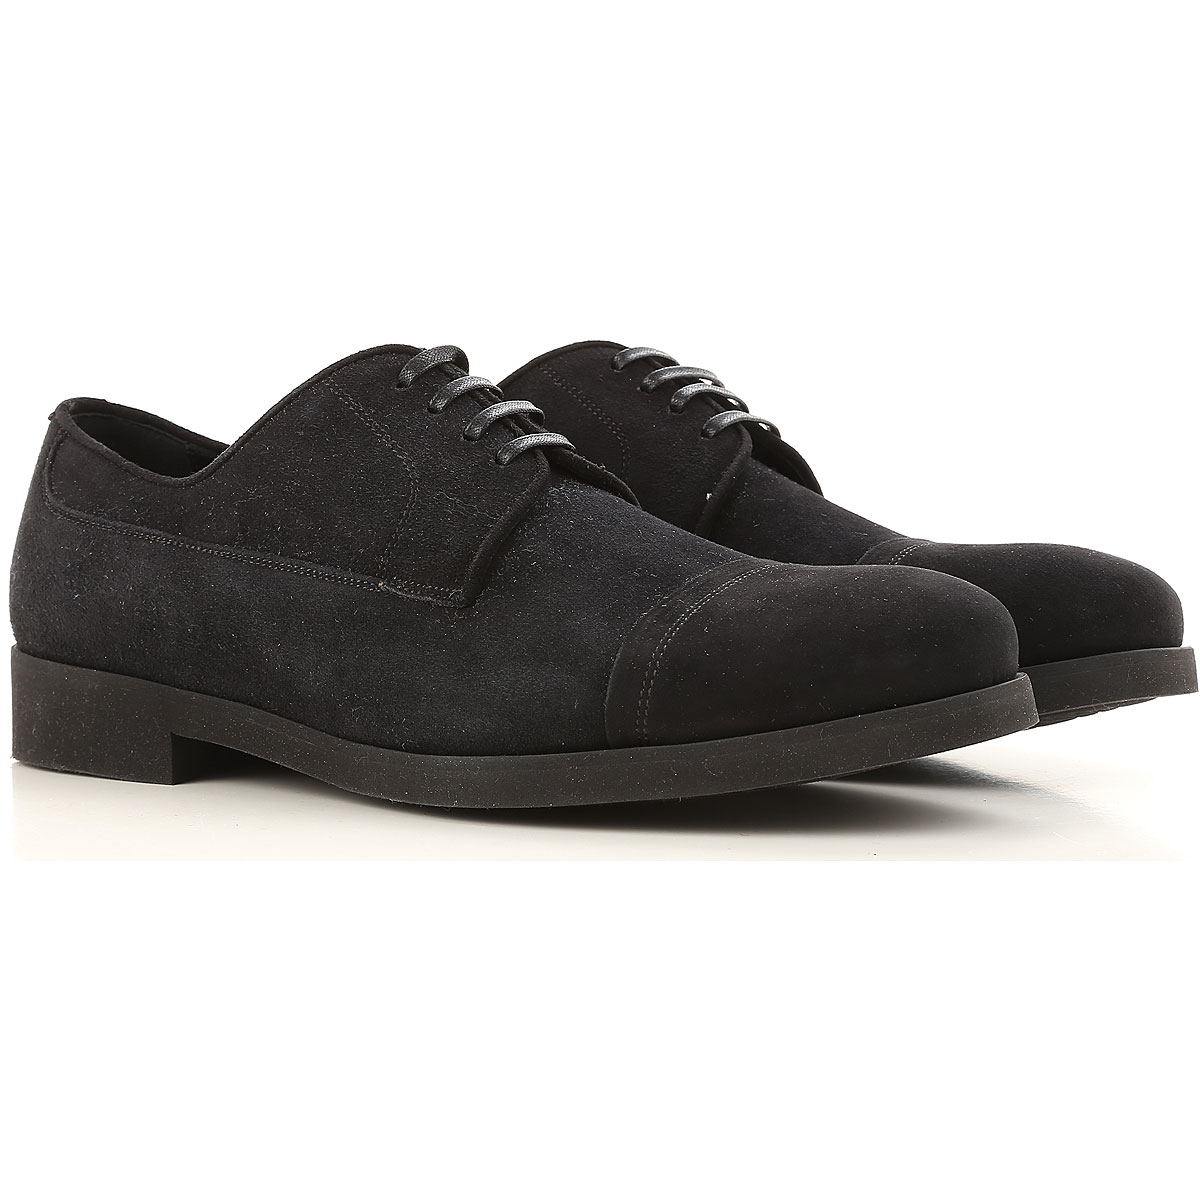 Dolce & Gabbana Lace Up Shoes for Men Oxfords Derbies and Brogues On Sale in Outlet - GOOFASH